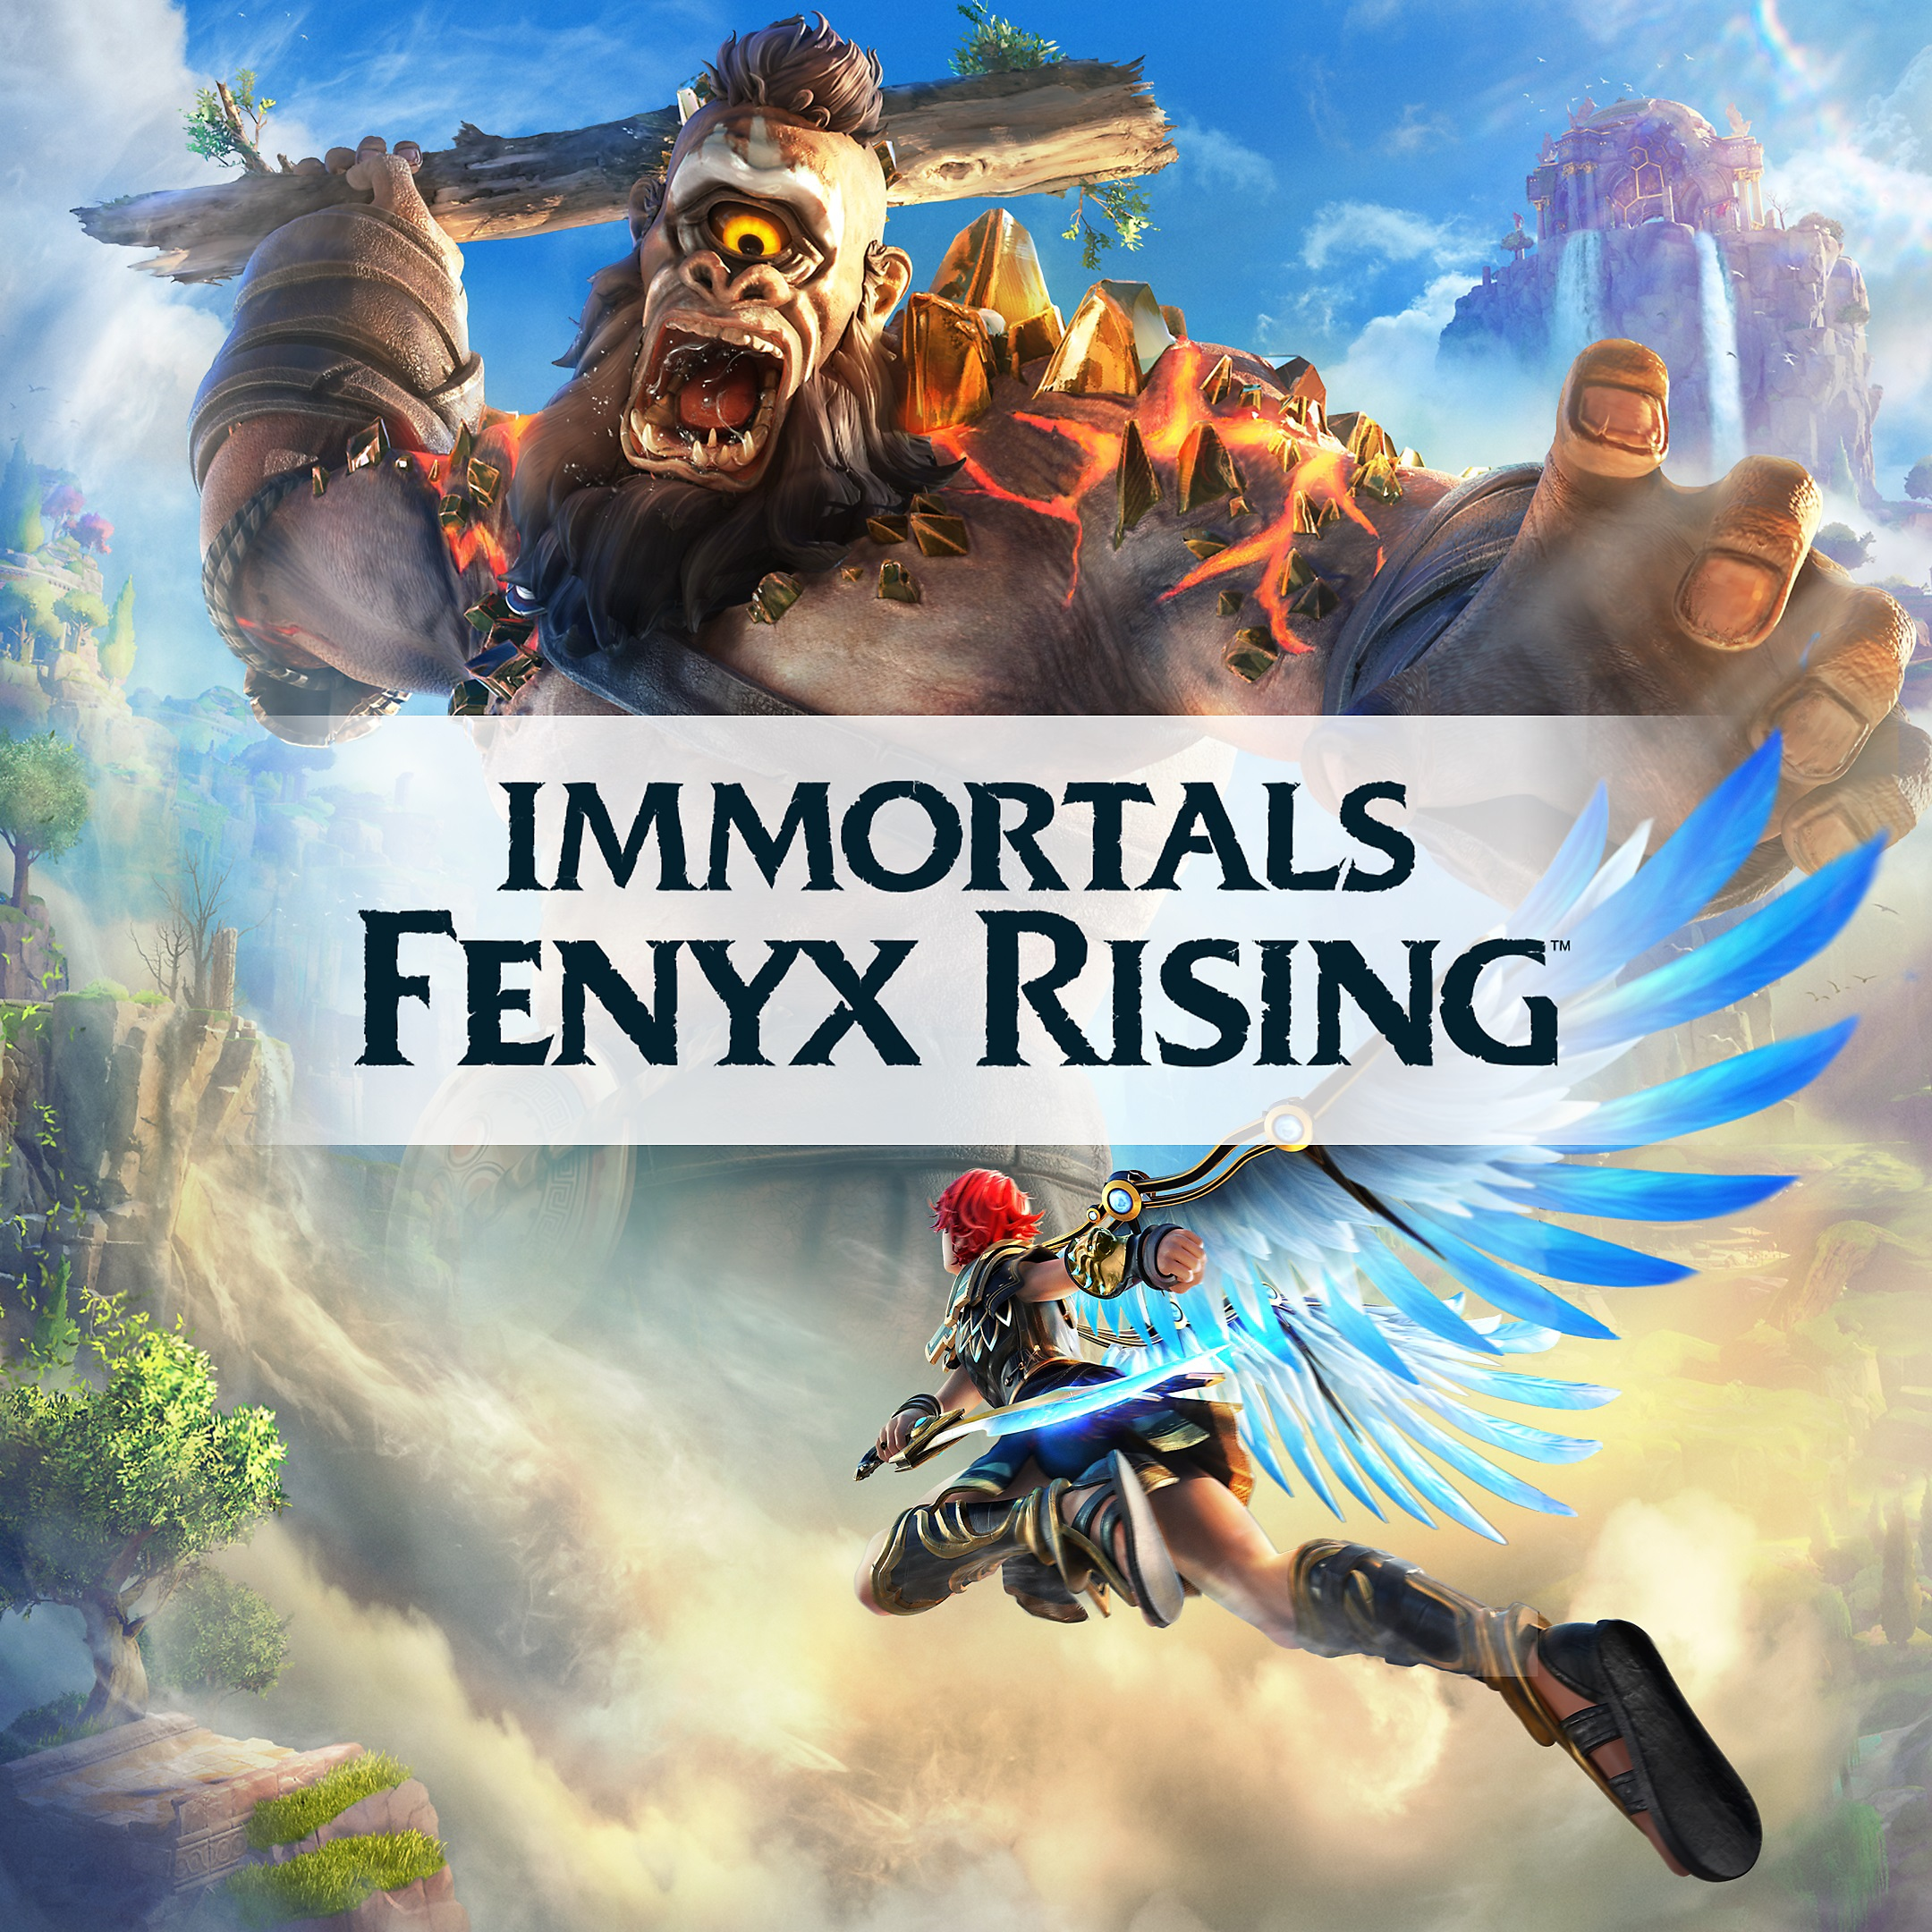 Immortals Fenyx Rising - Store Art